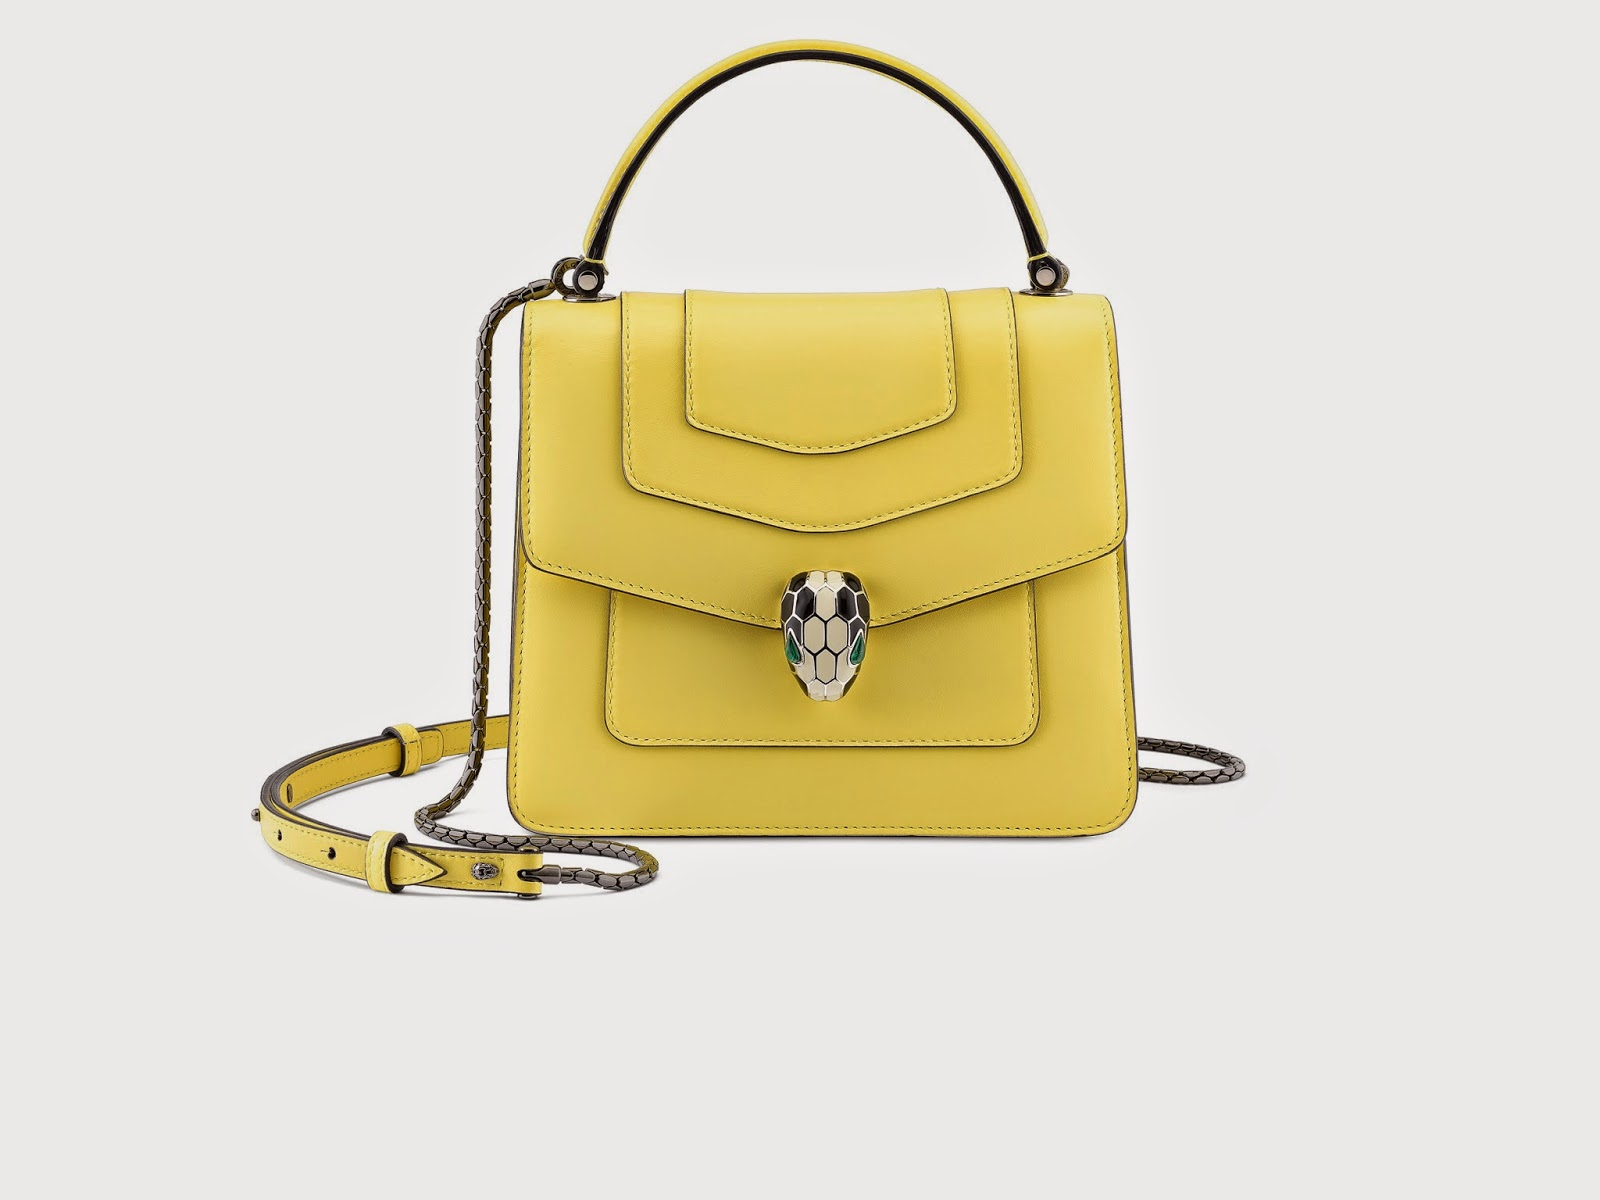 New Bulgari Spring/Summer 15 Bags